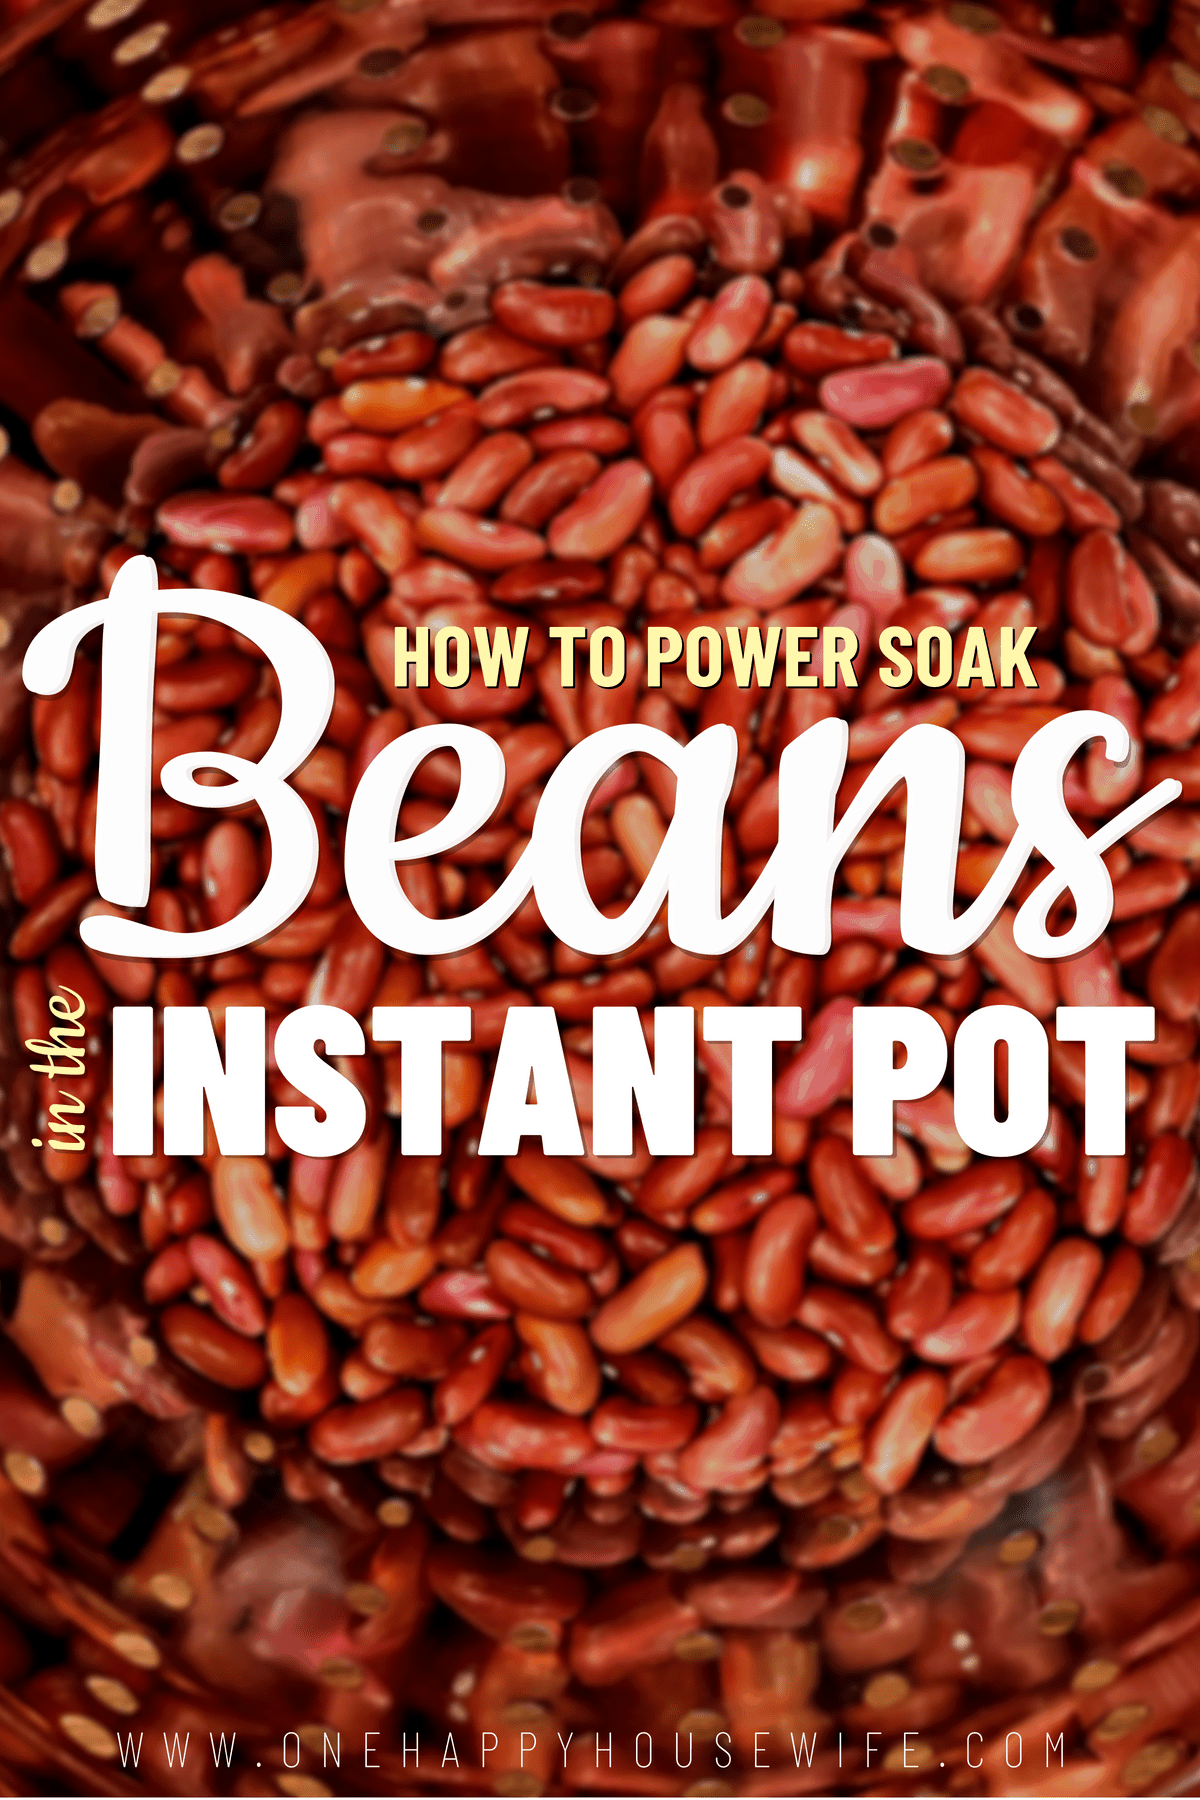 Power Soaking Red Kidney Beans The absolute fastest way to soak beans! Learn how to power soak red kidney beans in the Instant Pot. Visit the website to learn more. via @onehappyhousewife